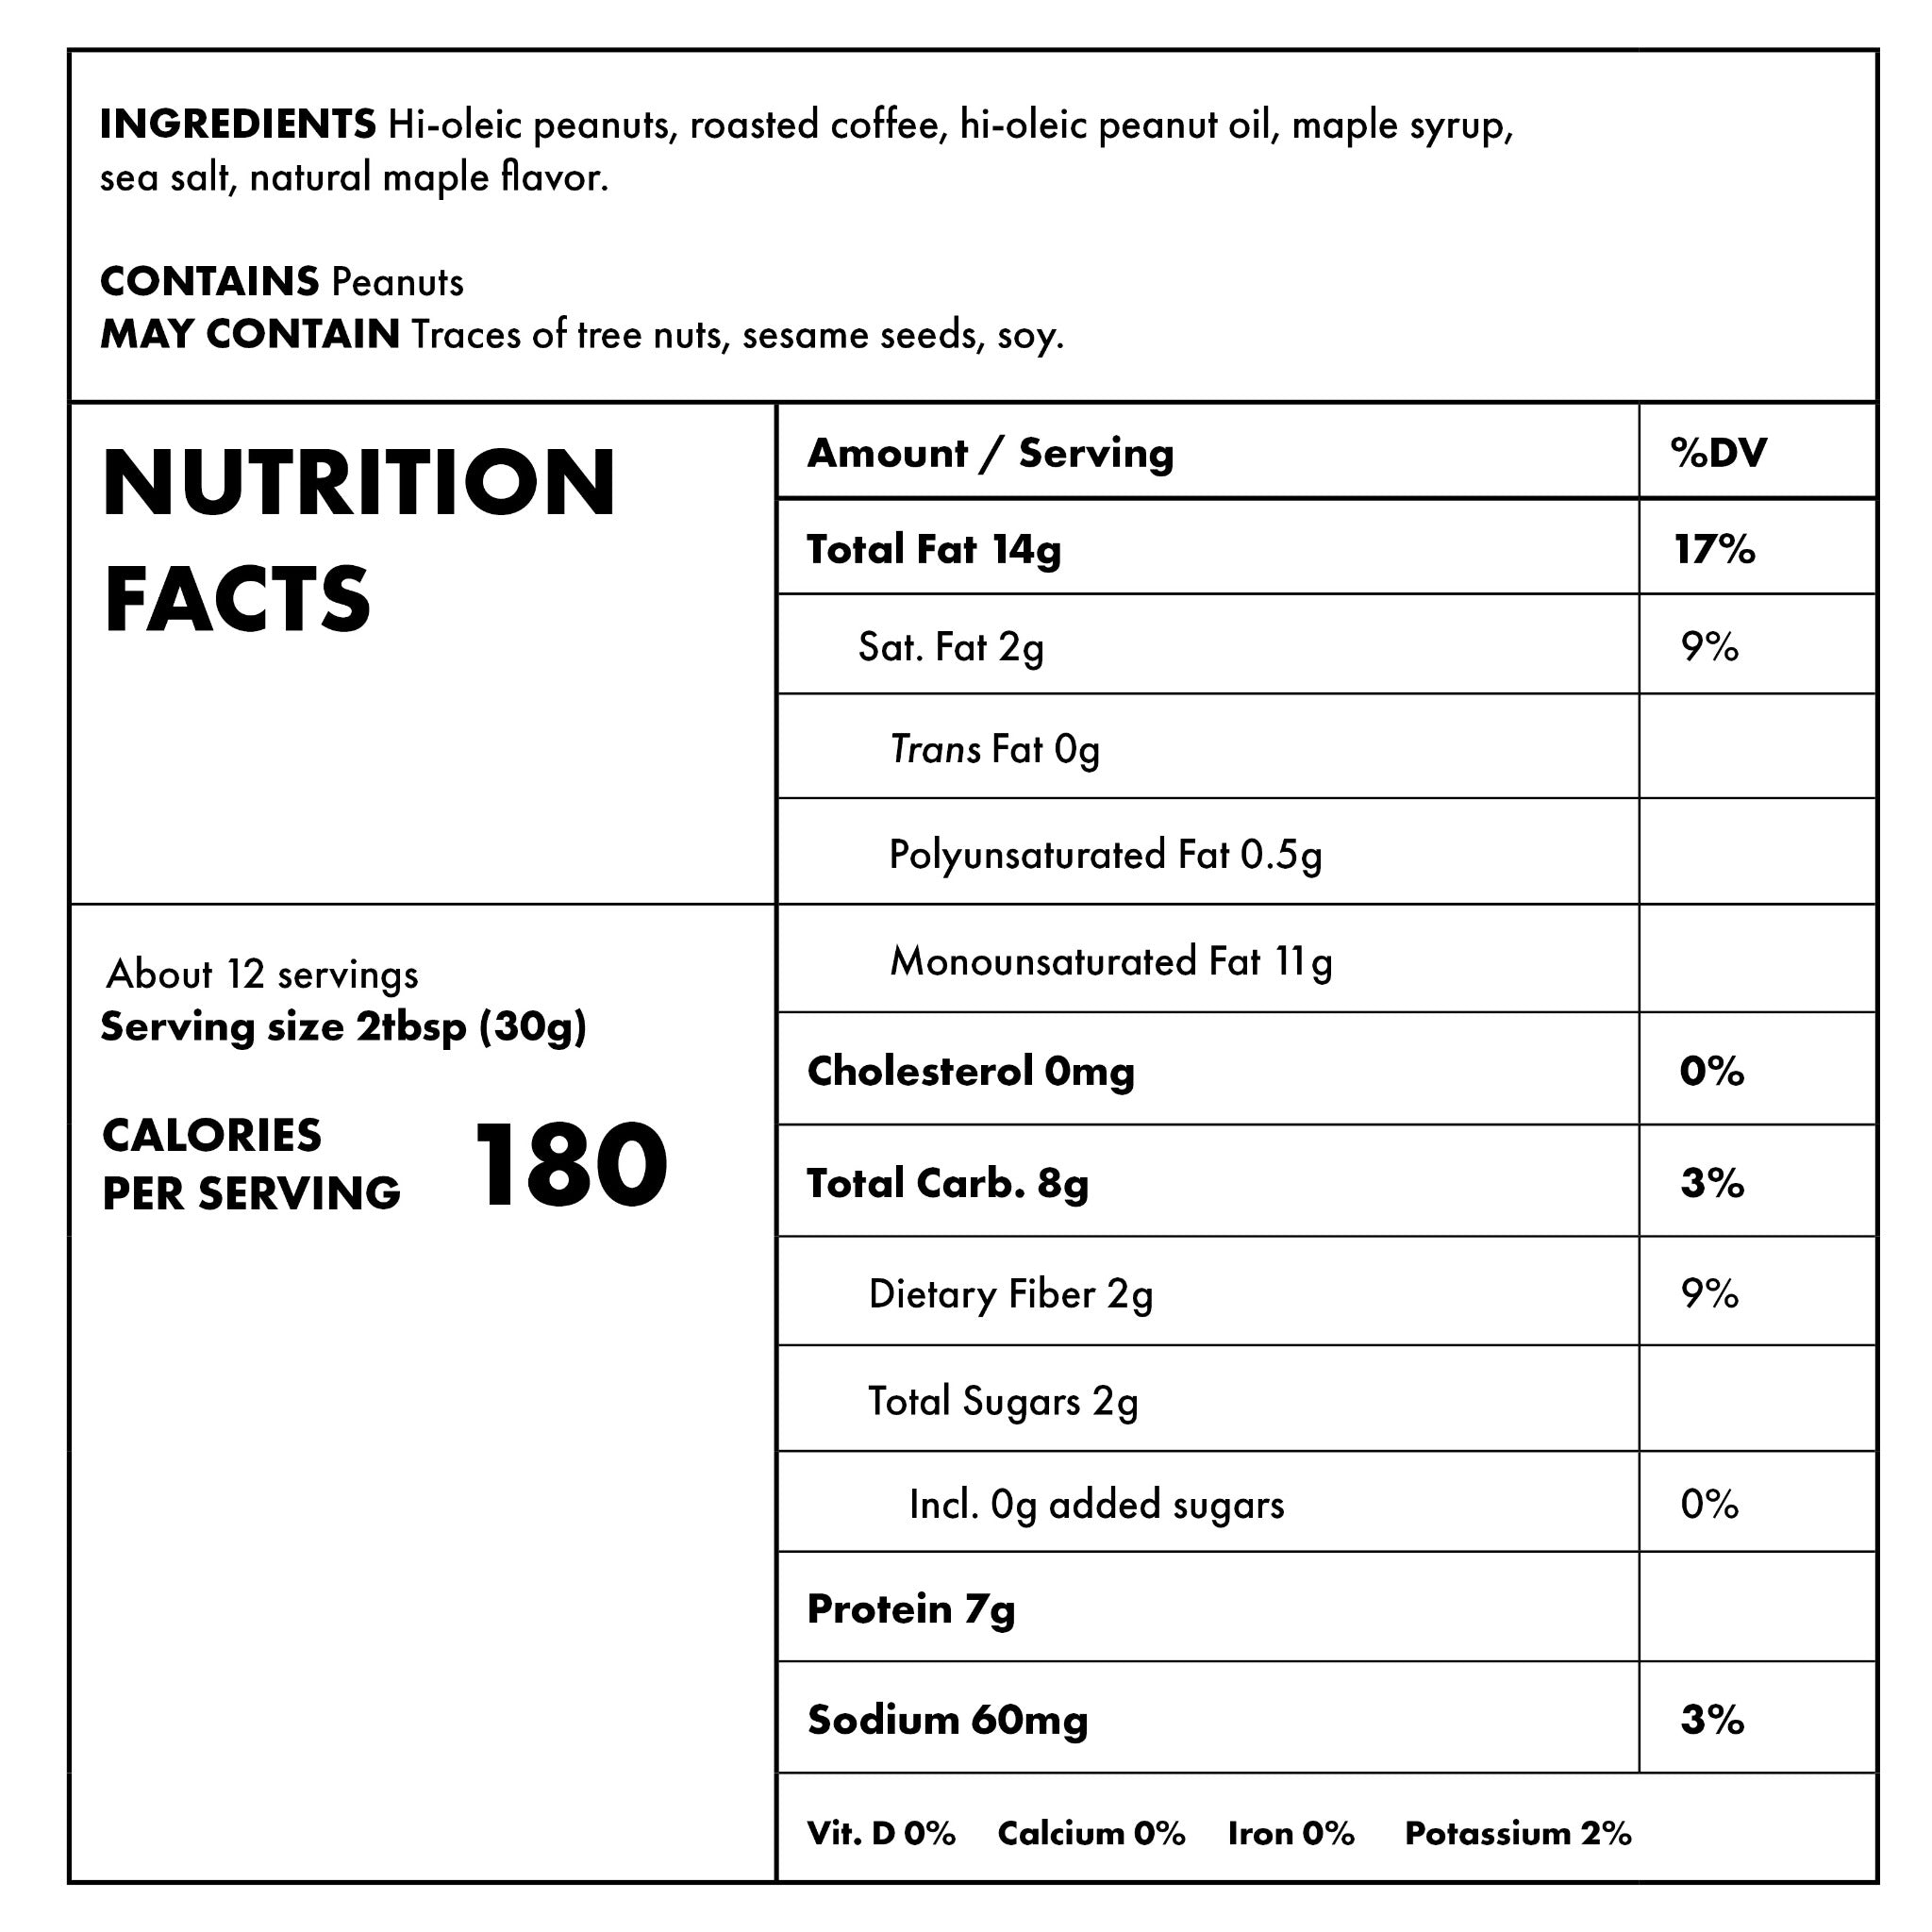 Coffee and Maple Nutritional Information